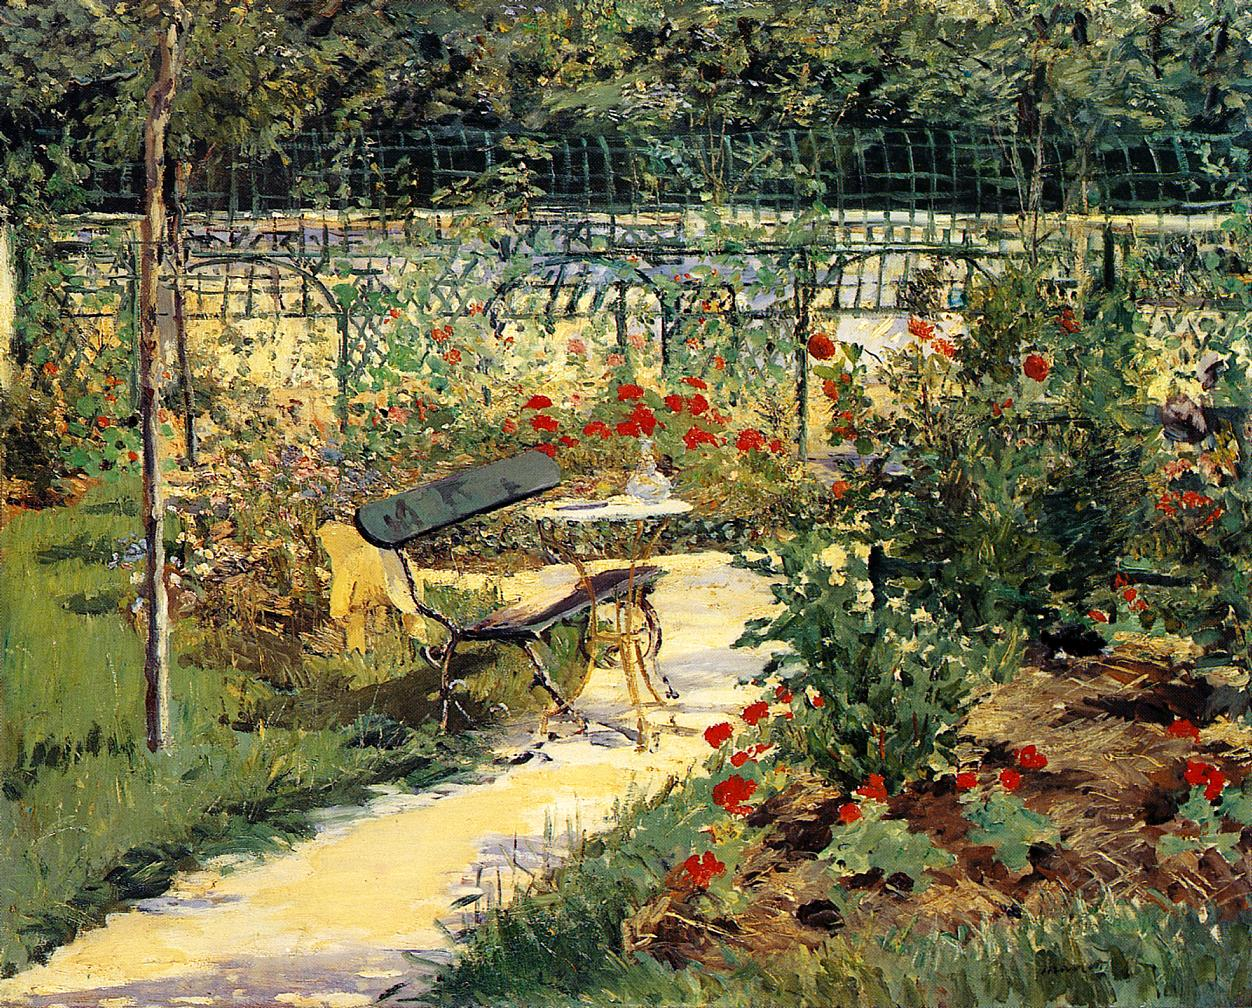 The-Bench-also-known-as-My-Garden-1881.jpg